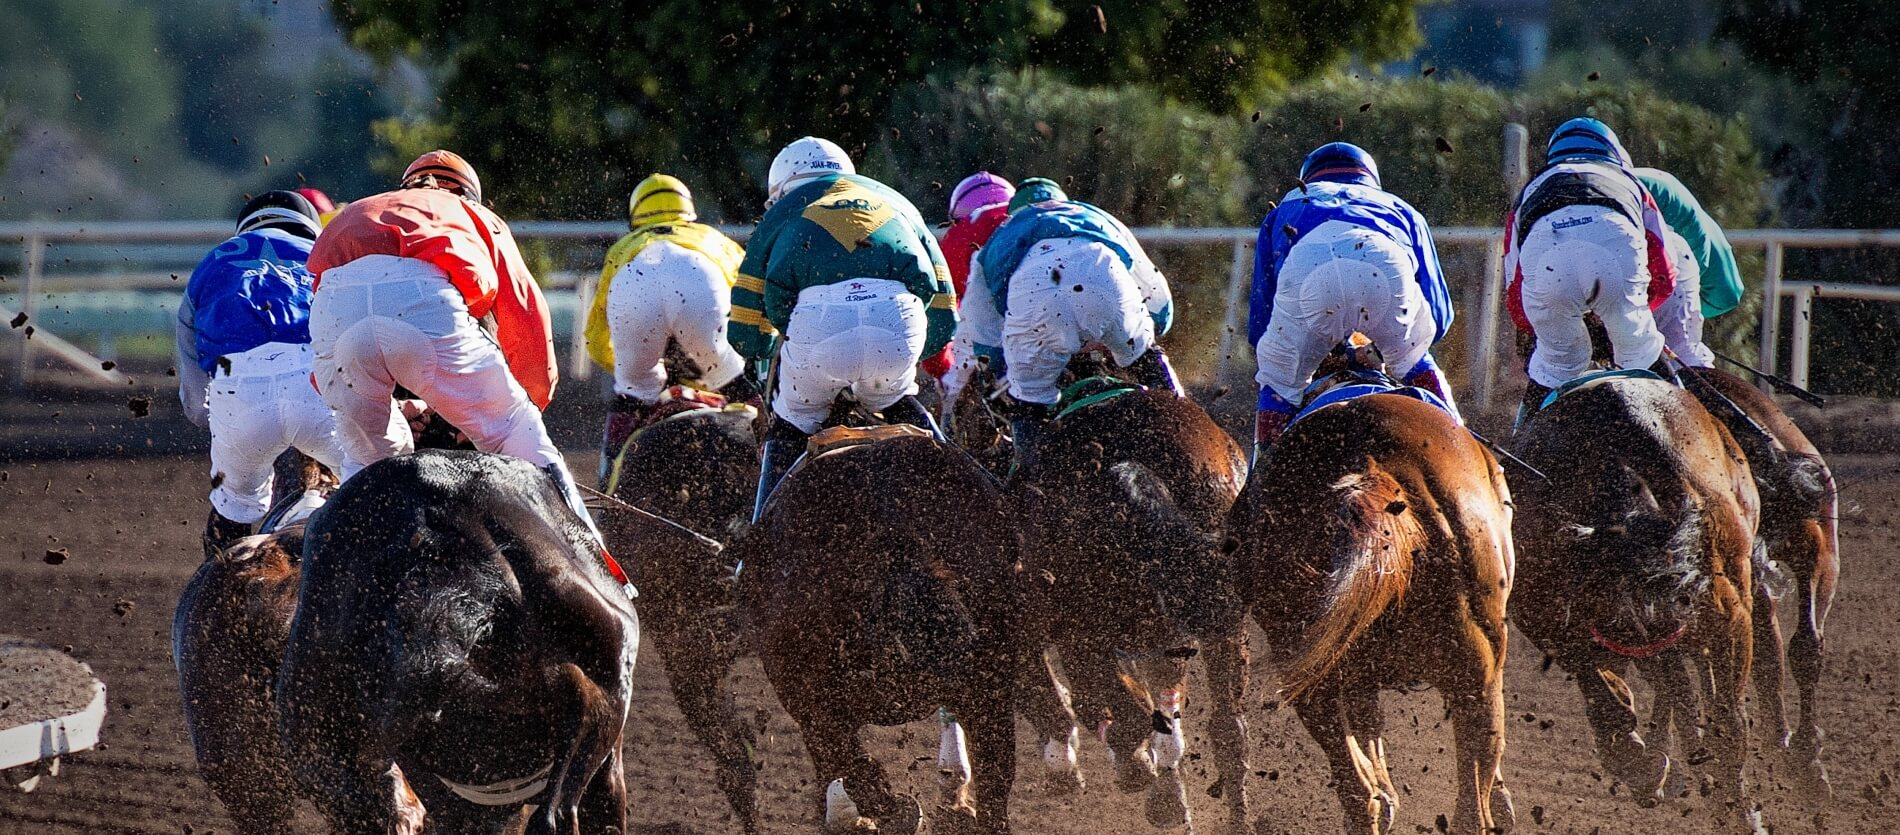 Rear view of a horse race.